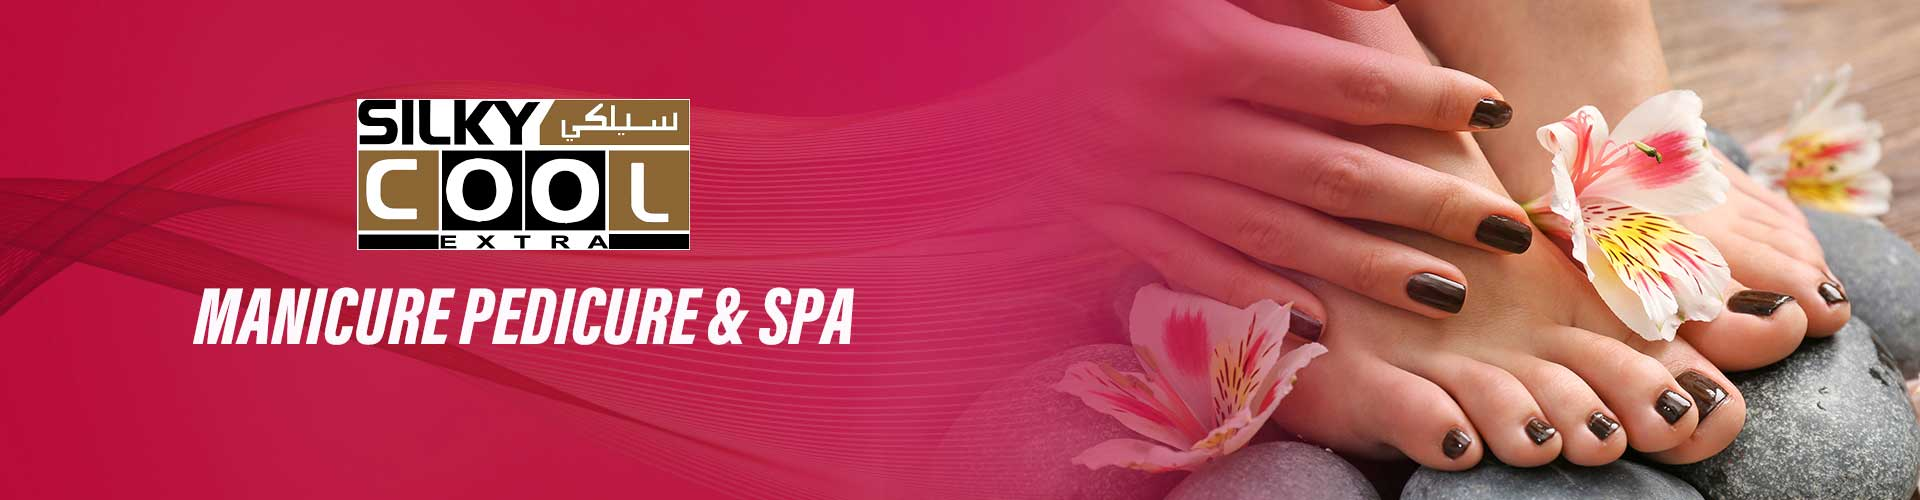 pedicure-and-manicure-banner